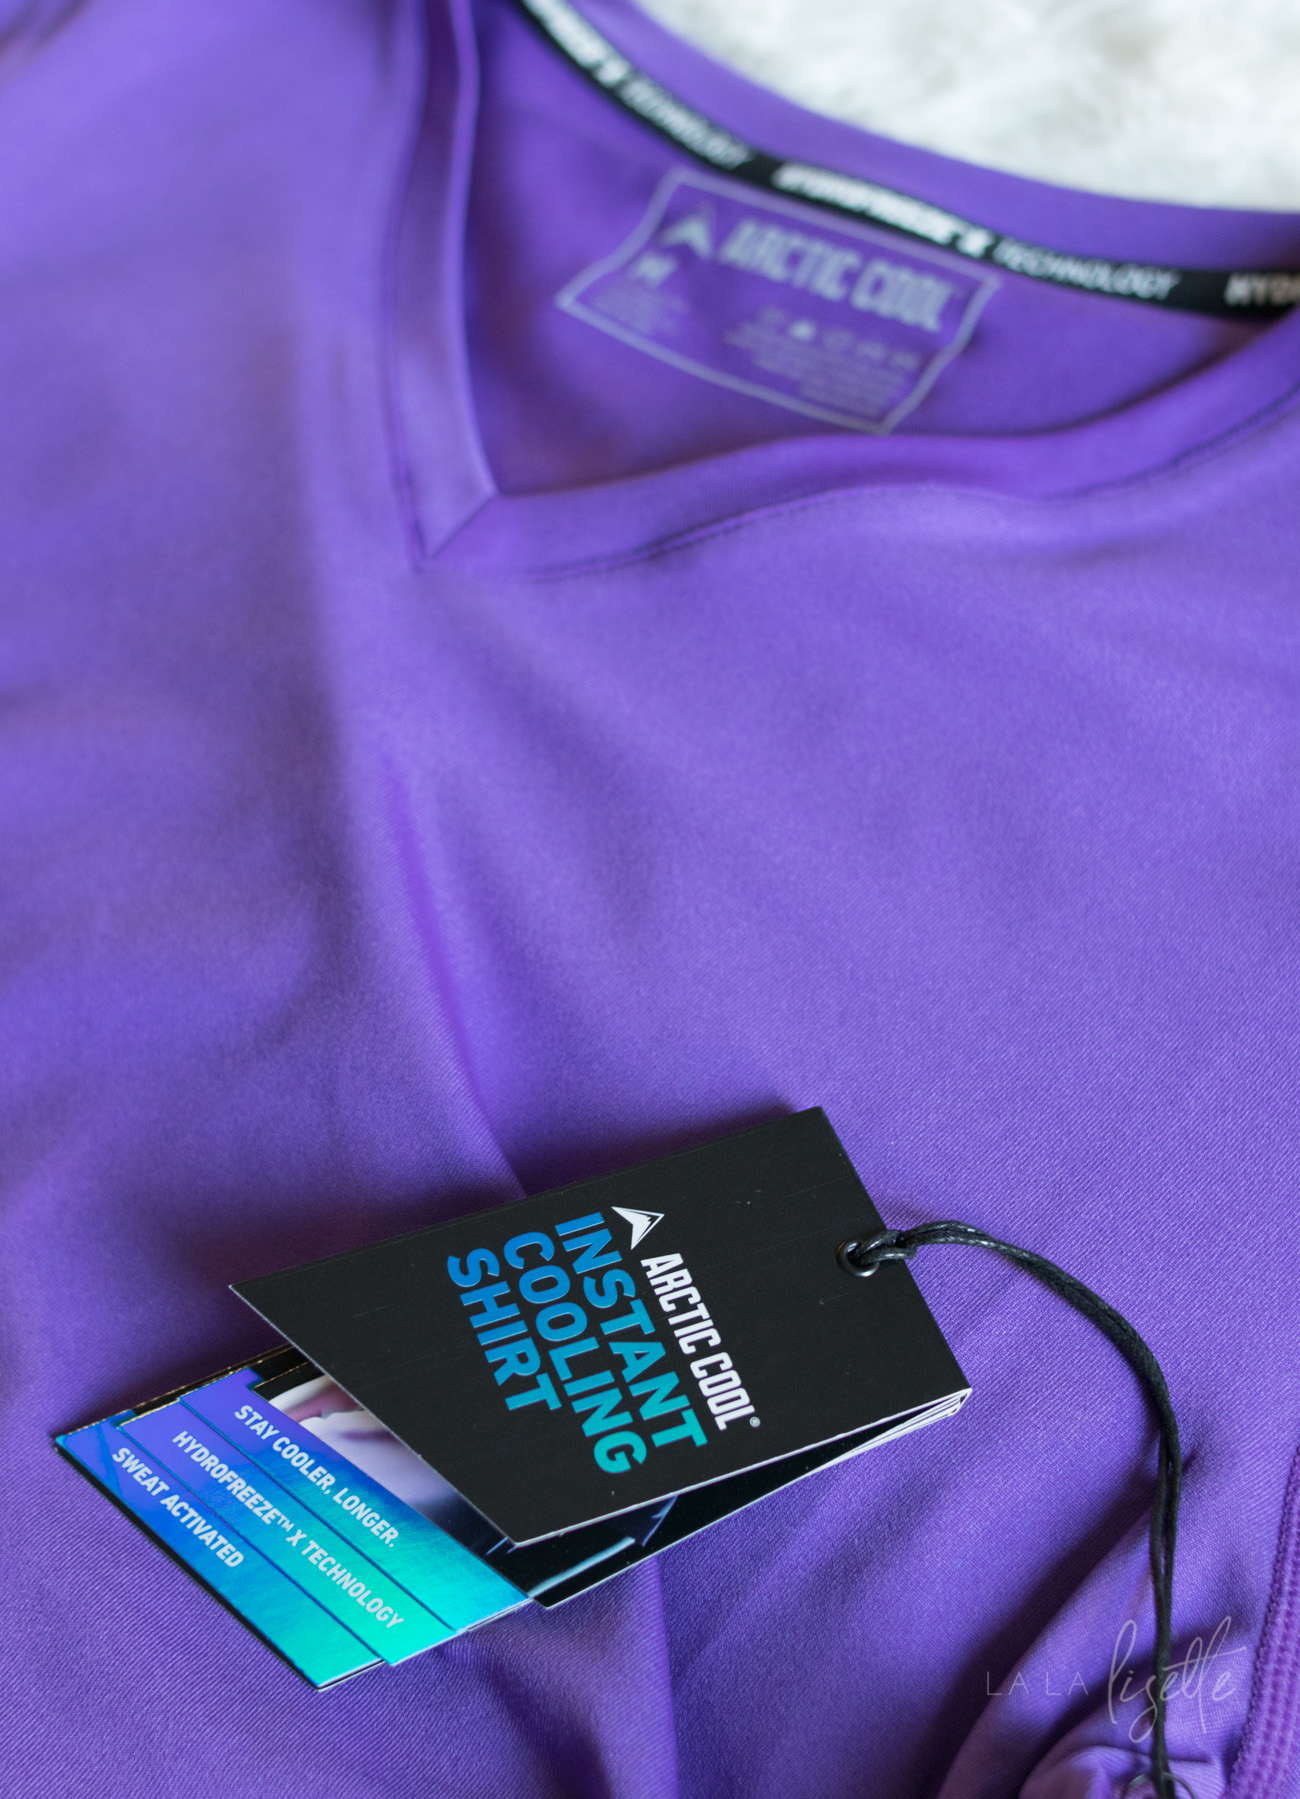 Unique Gifts for Her   La La Lisette - Are you still looking for unique gifts for her? These gifts are perfect for the person who has everything and are a little hard to shop for. Arctic Cool Hydrofreeze shirt #ad #WishListBBxx